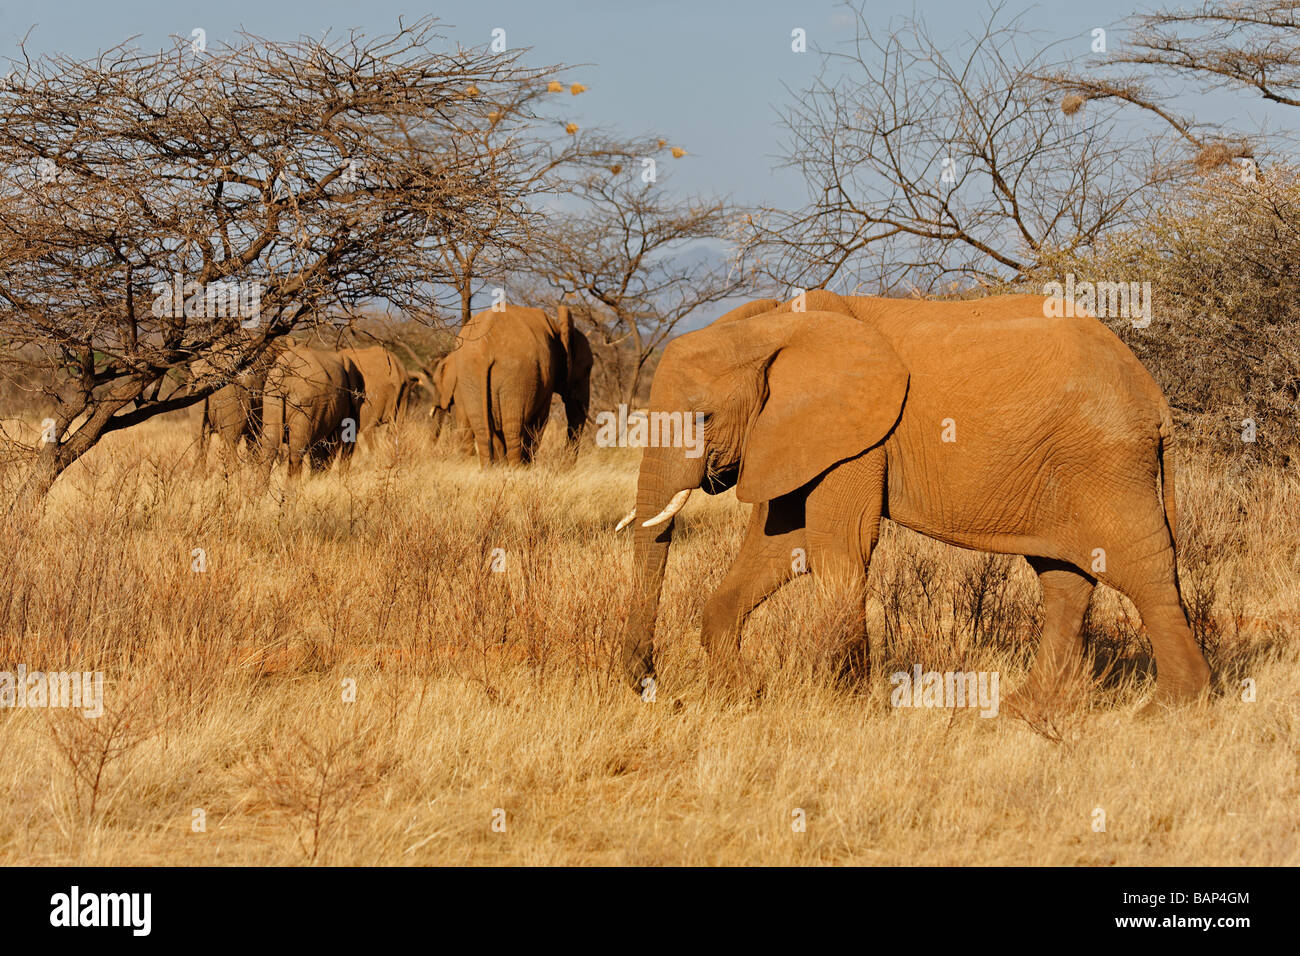 African elephant browsing on shrubs in the harsh environment of Samburu National Reserve Kenya - Stock Image